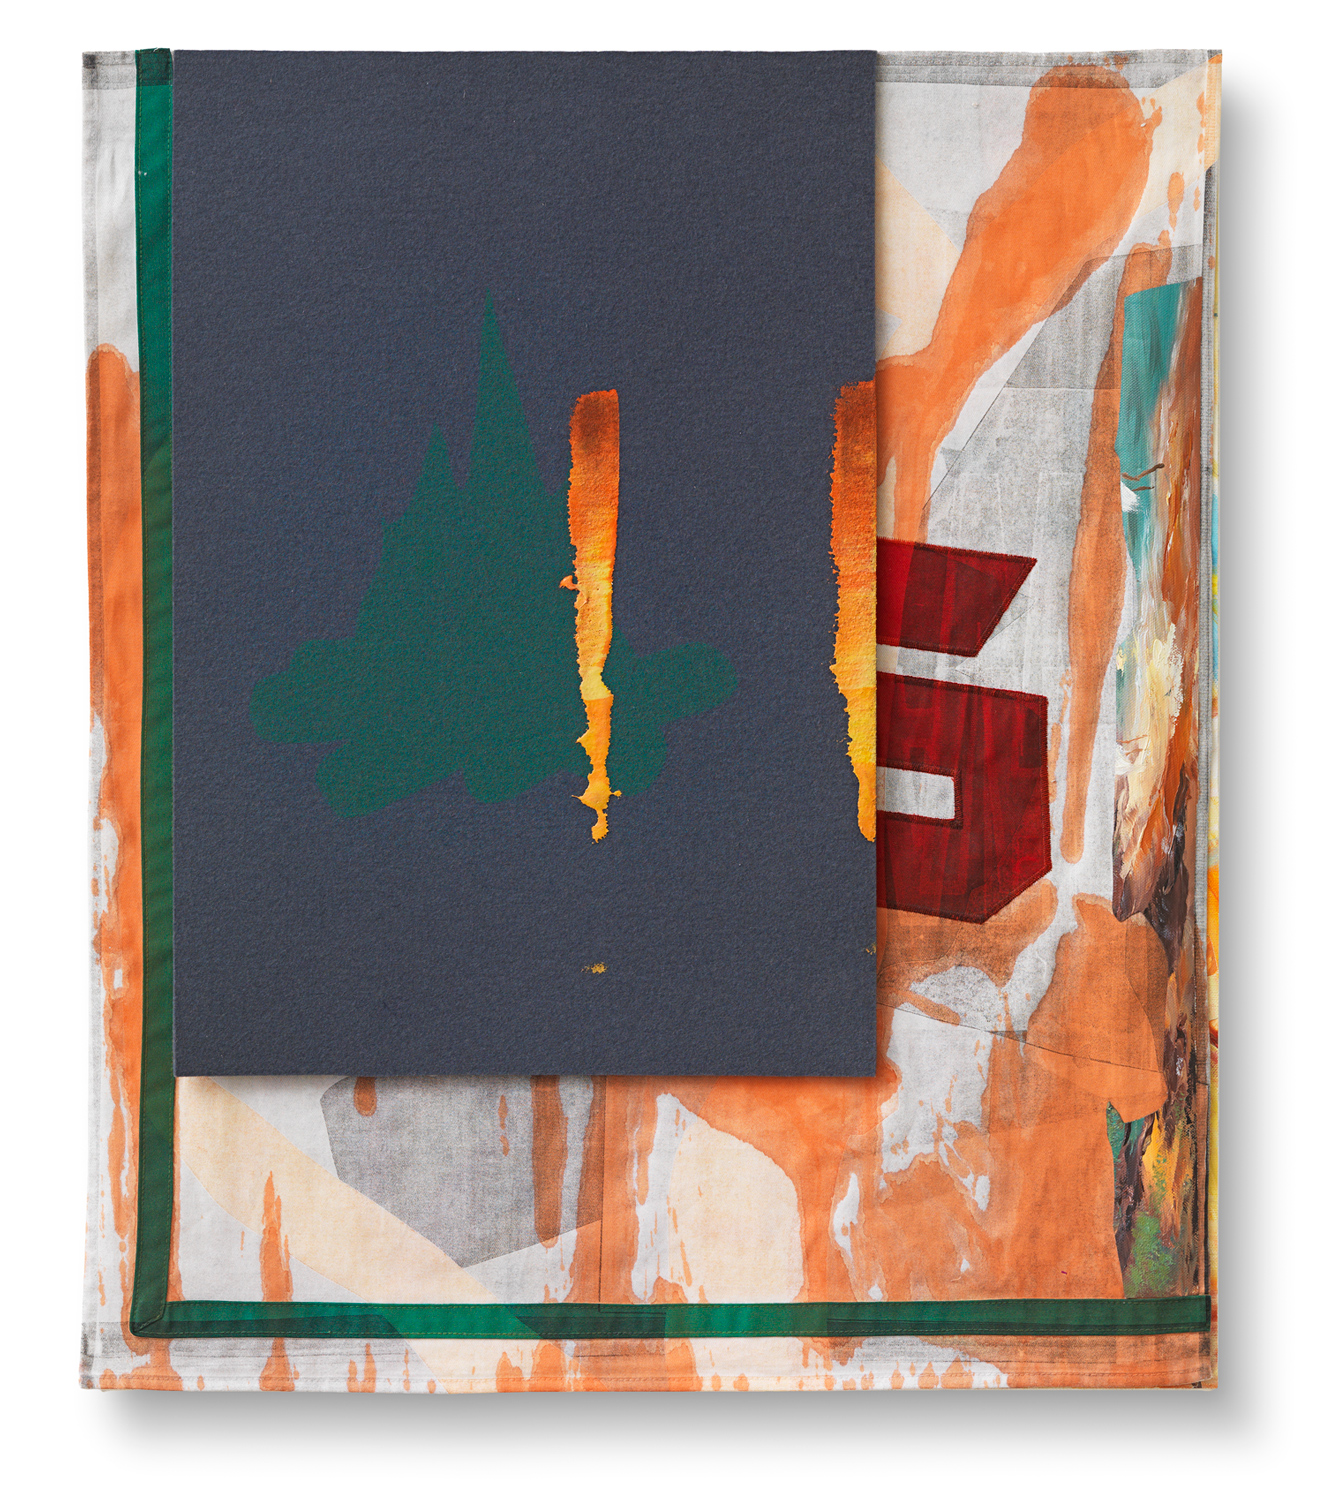 Untitled (Sonntag), 2014, Mixed media on canvas, 75,5 x 63,5 cm